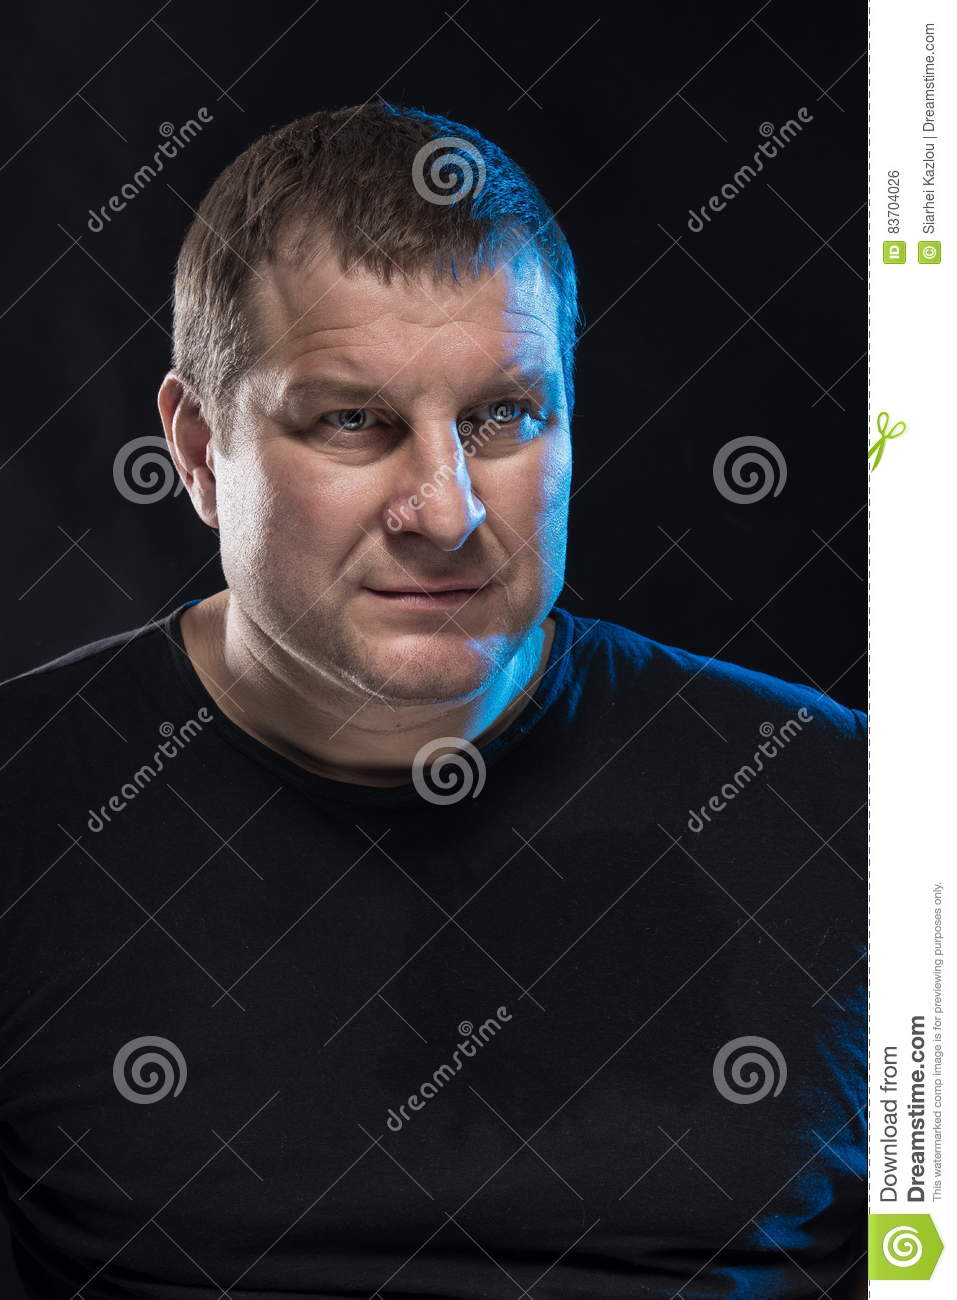 Brutal Man Actor Gesticulates And Grimaces. Stock Photo - Image of fool. beast: 83704026